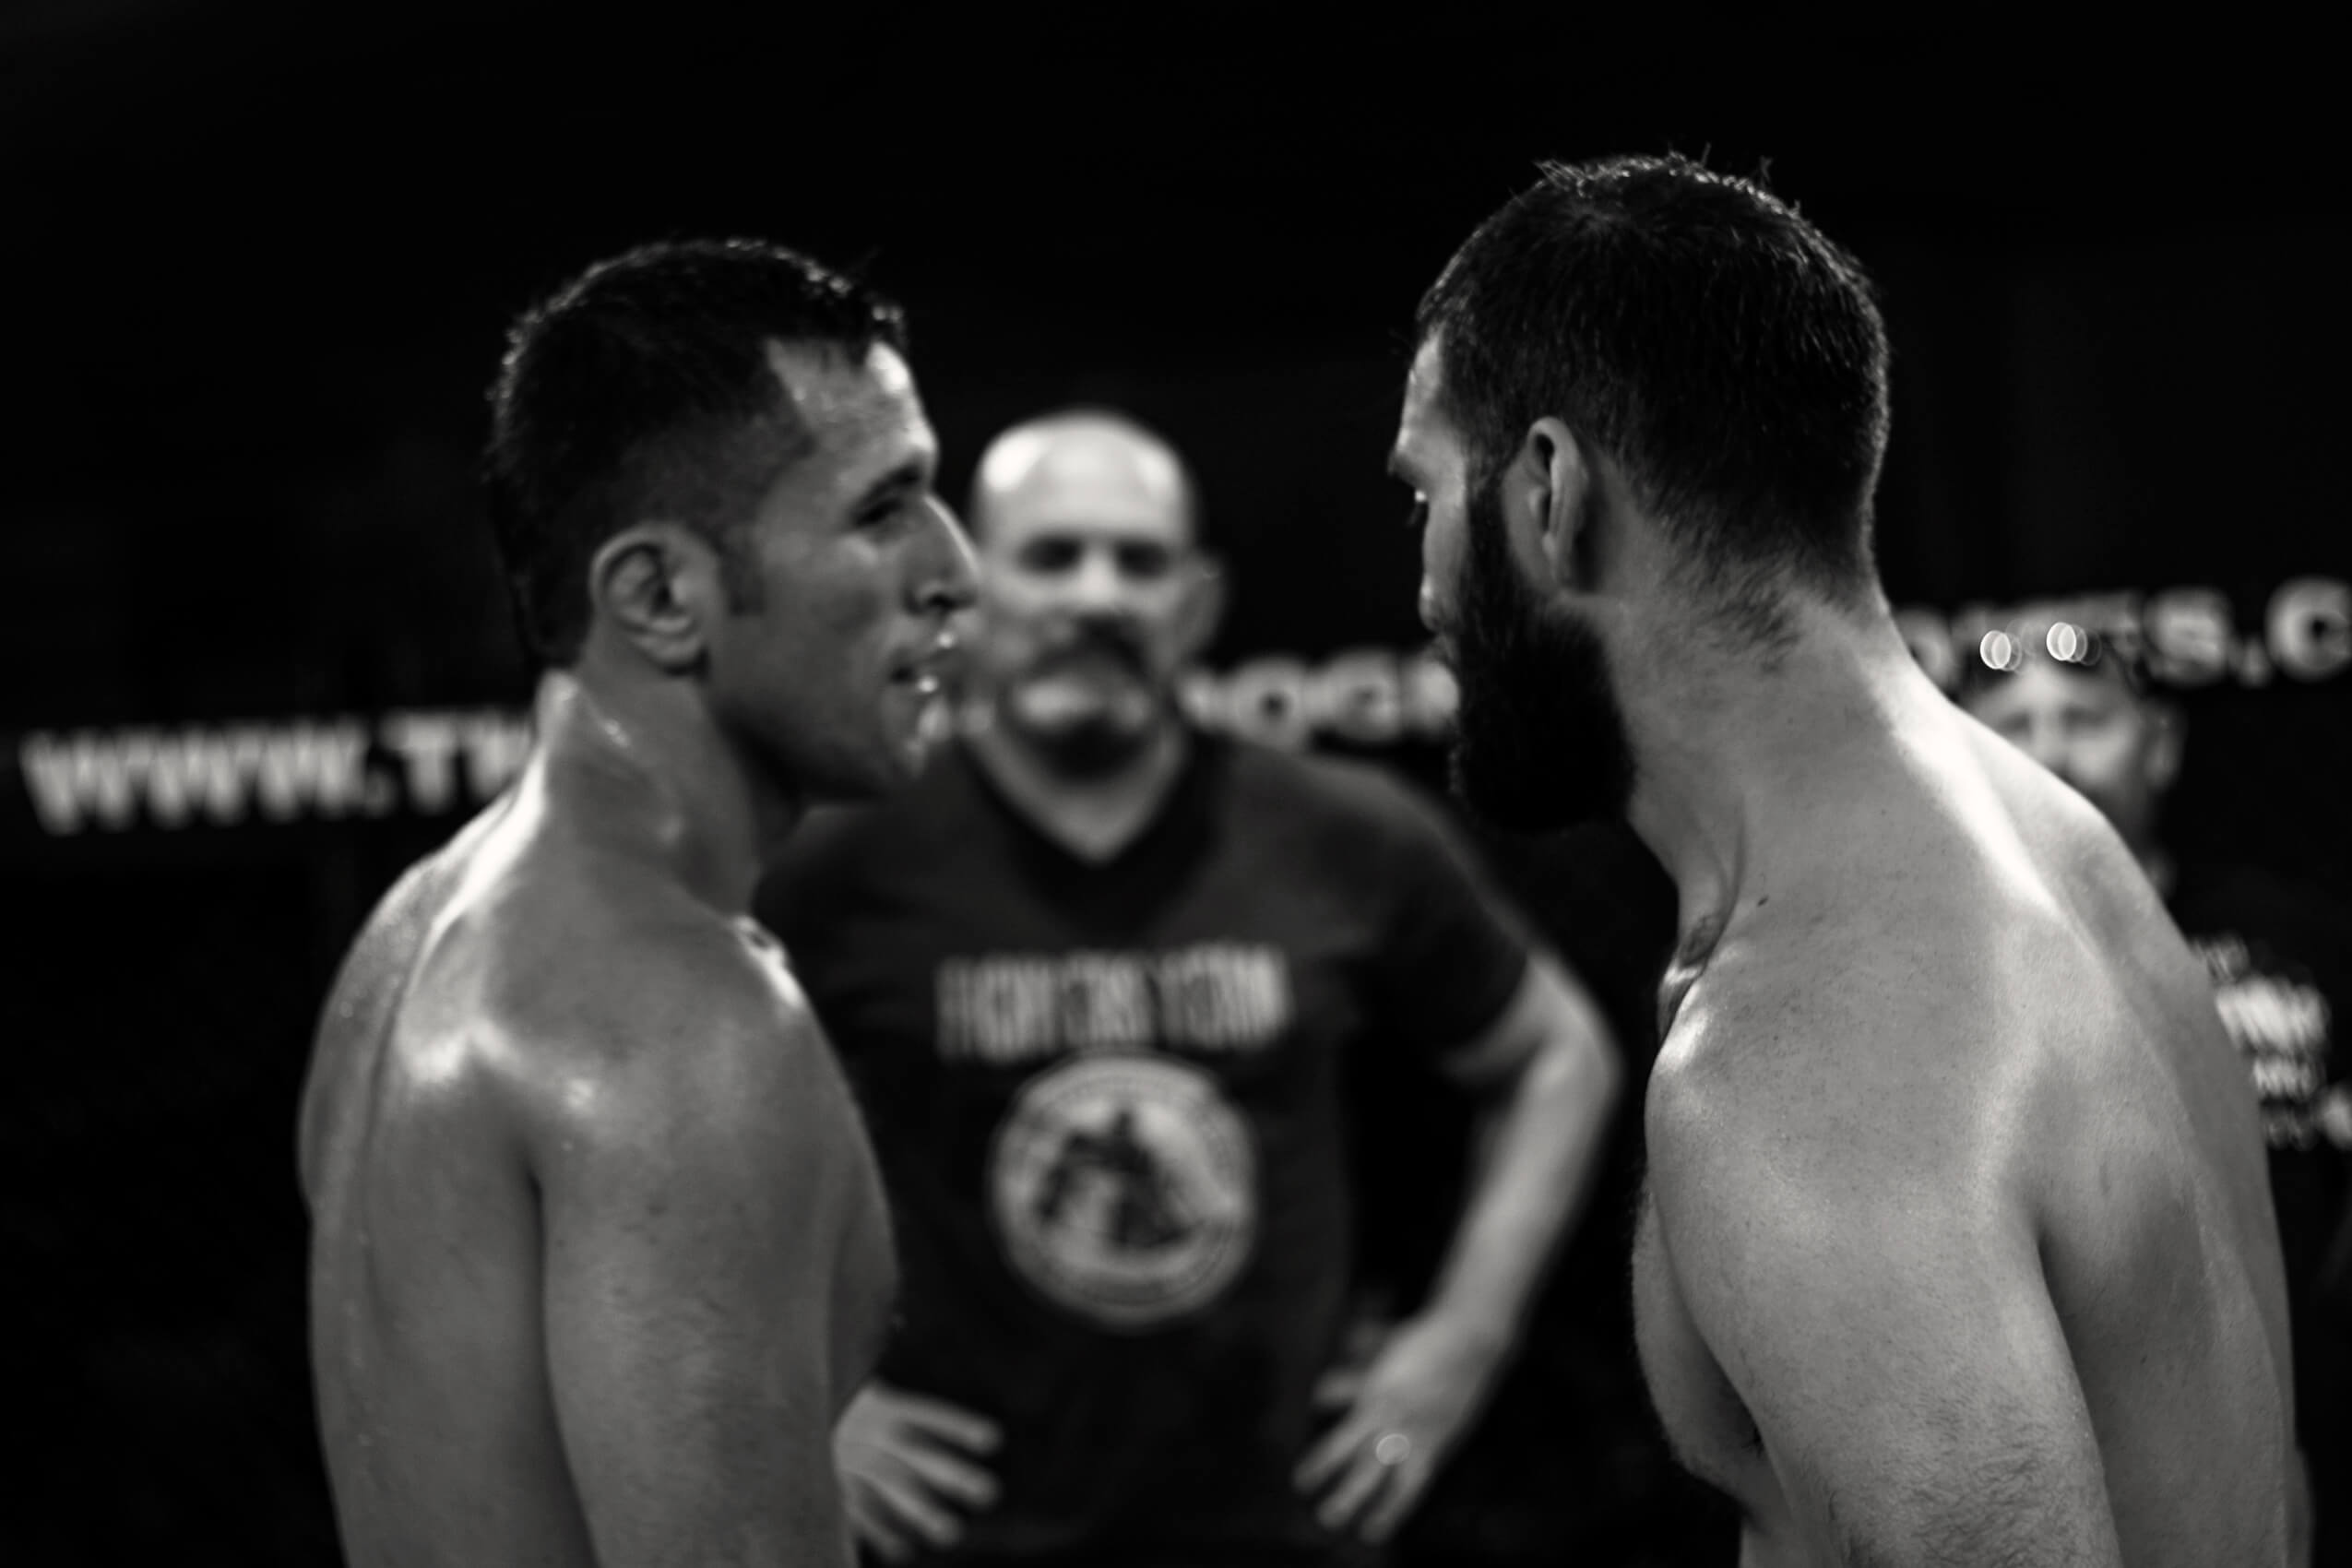 Jose Campos stare down after the fight at CFL VIII